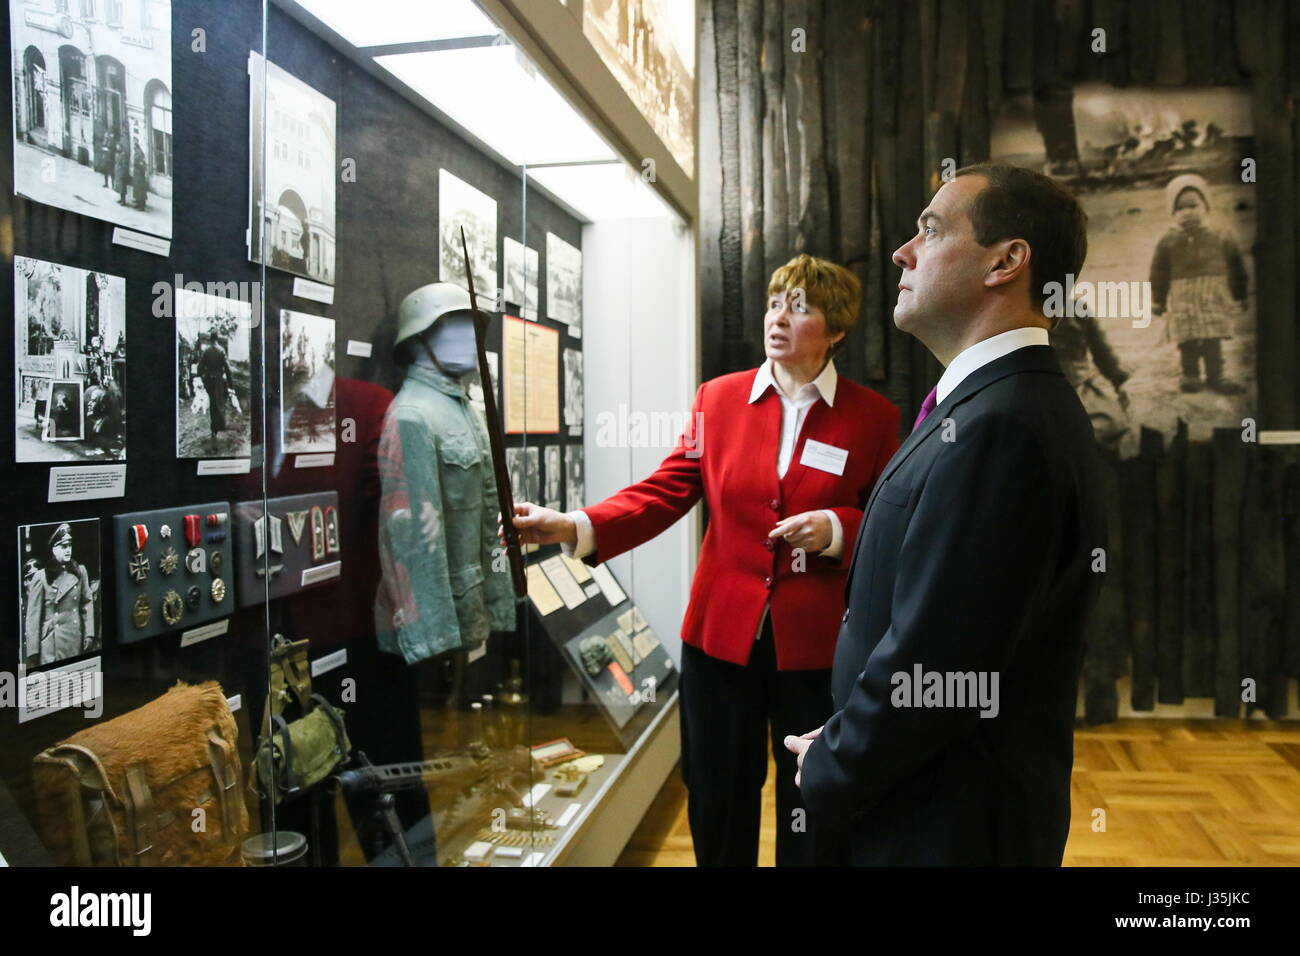 Smolensk, Russia. 3rd May, 2017. Russia's Prime Minister Dmitry Medvedev looks at showpieces on display at a - Stock Image